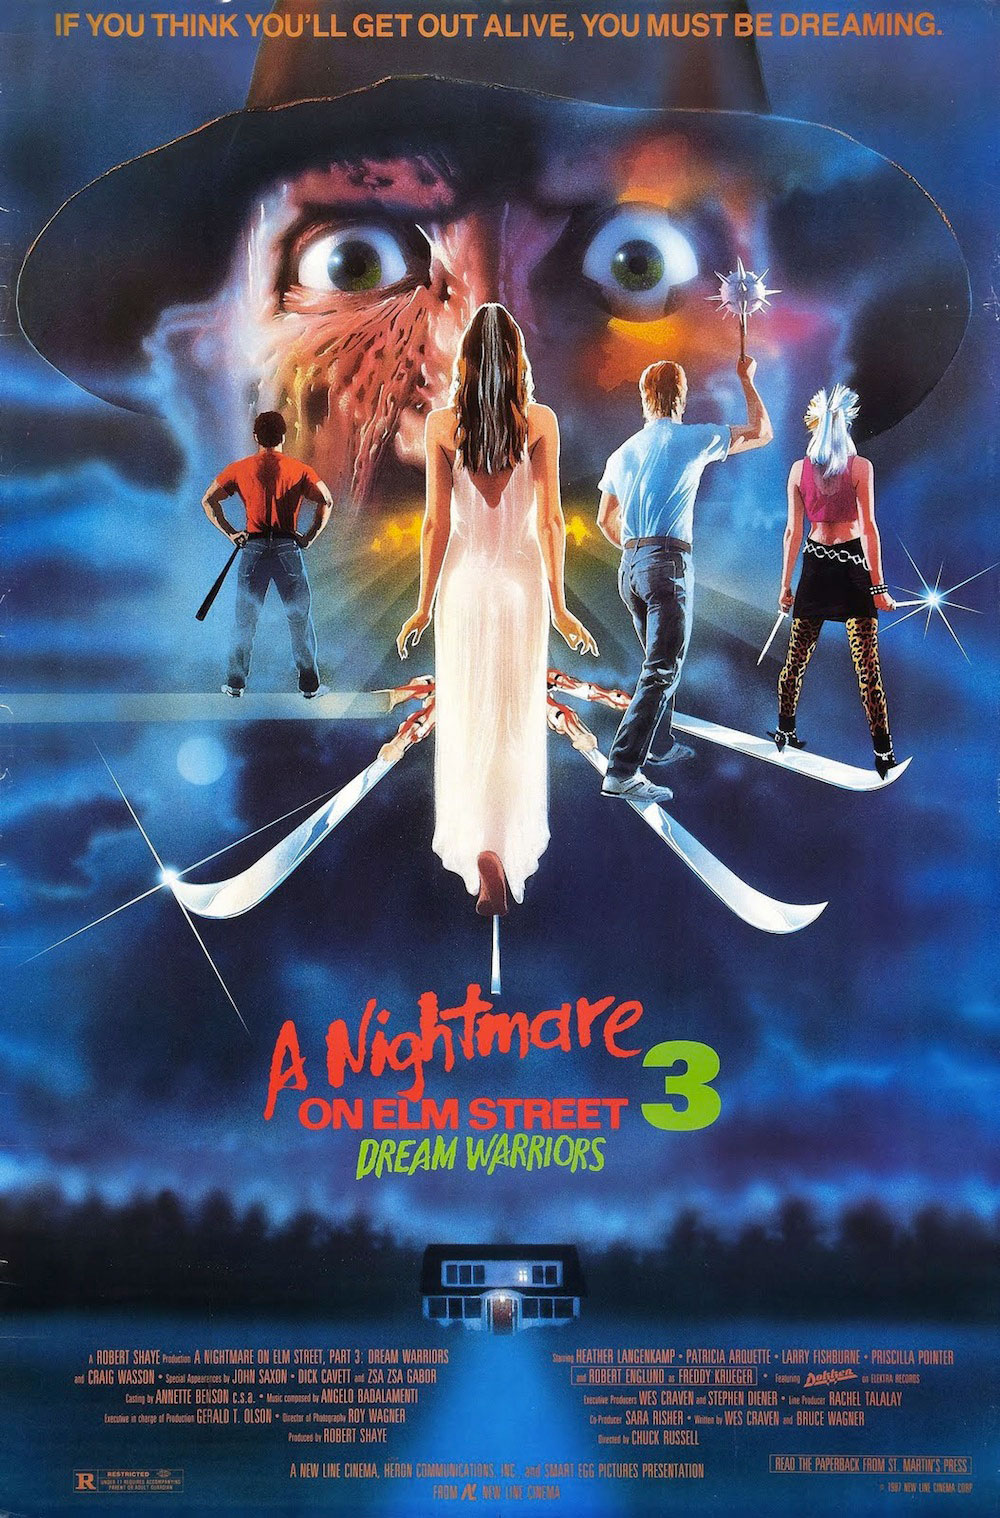 A Nightmare on Elm Street 3: Dream Warriors (1987) - 6 Film Posters that have Never Seen their own Film!